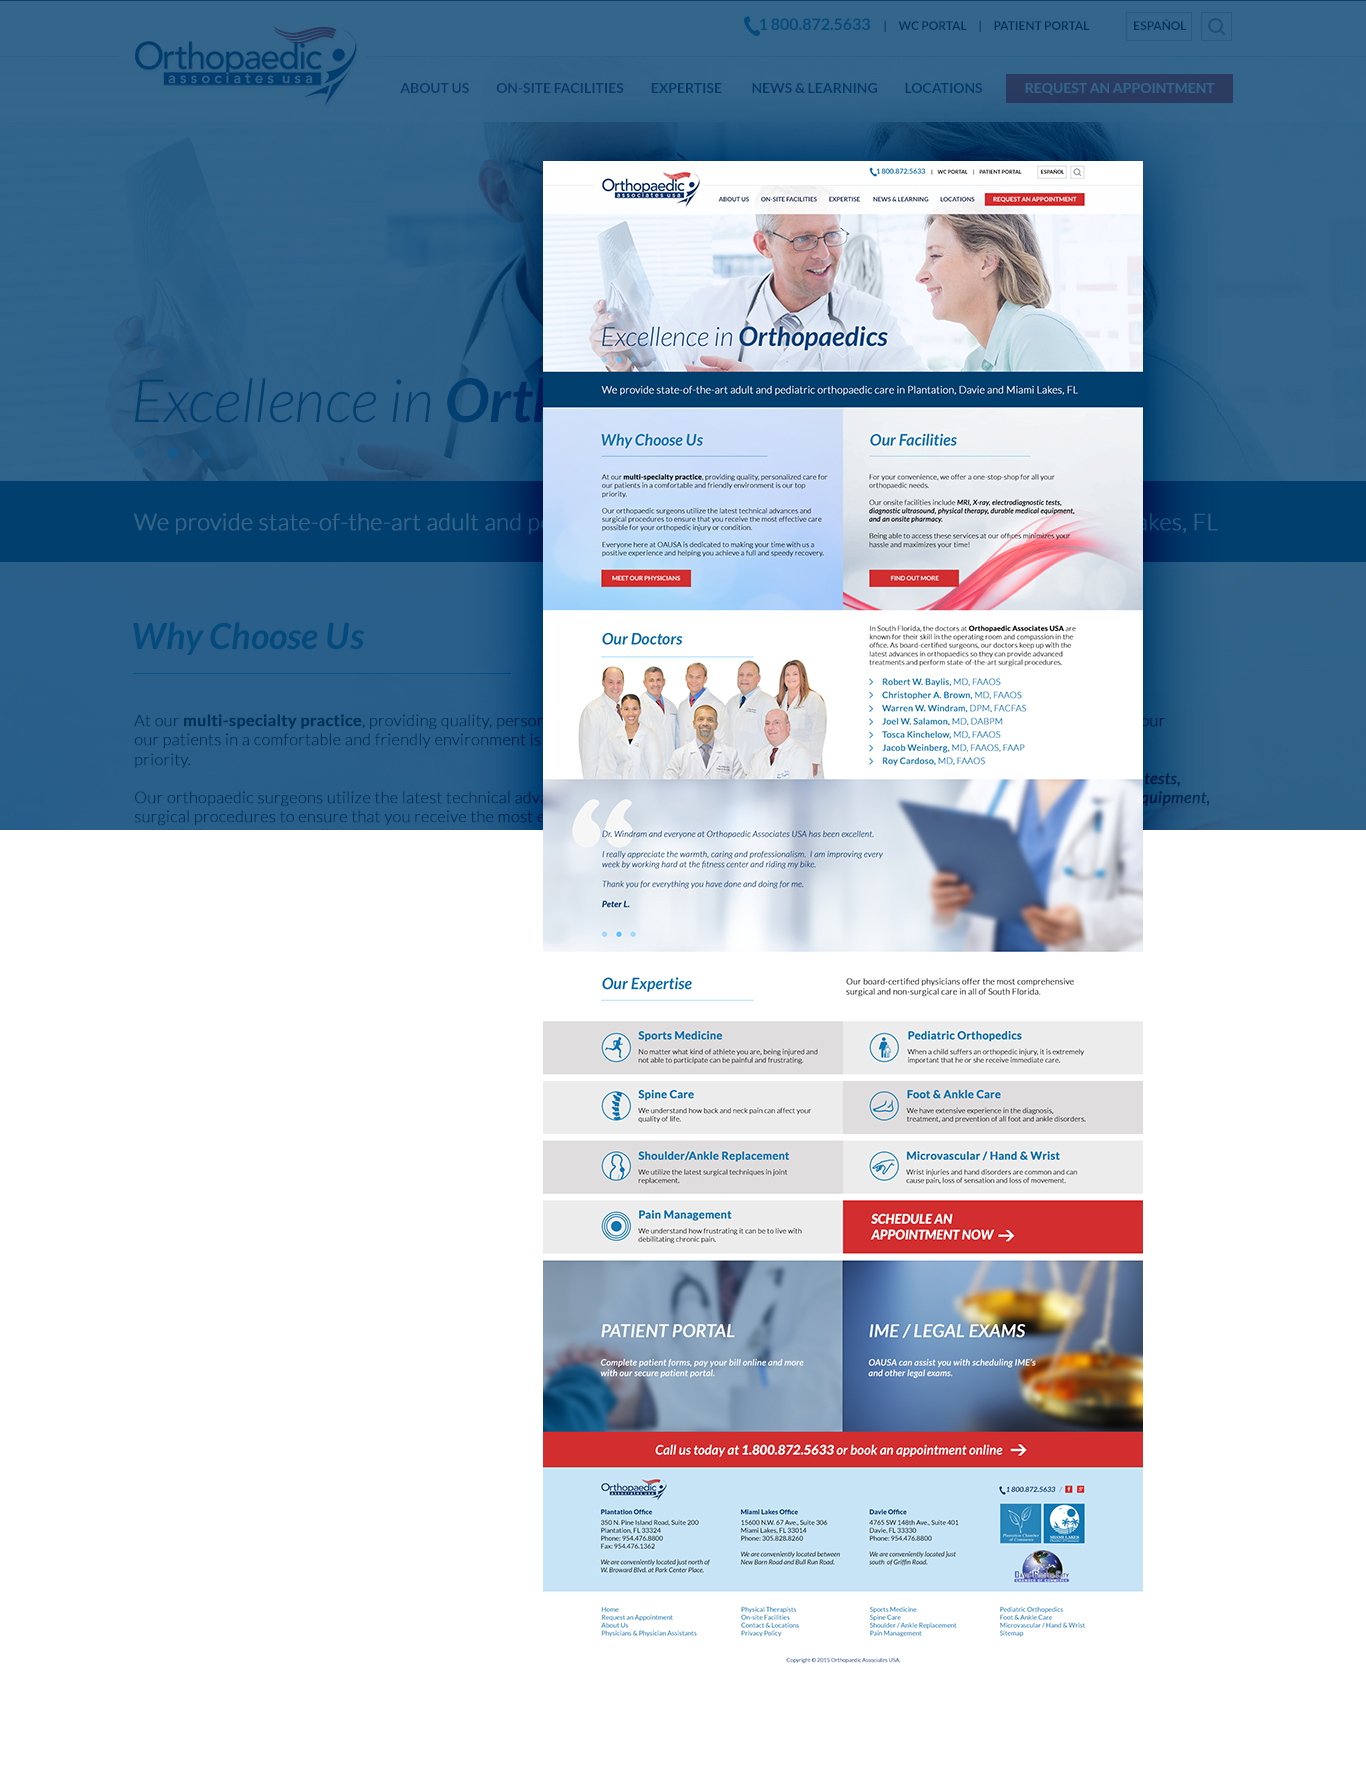 Orthopedic Associates website design